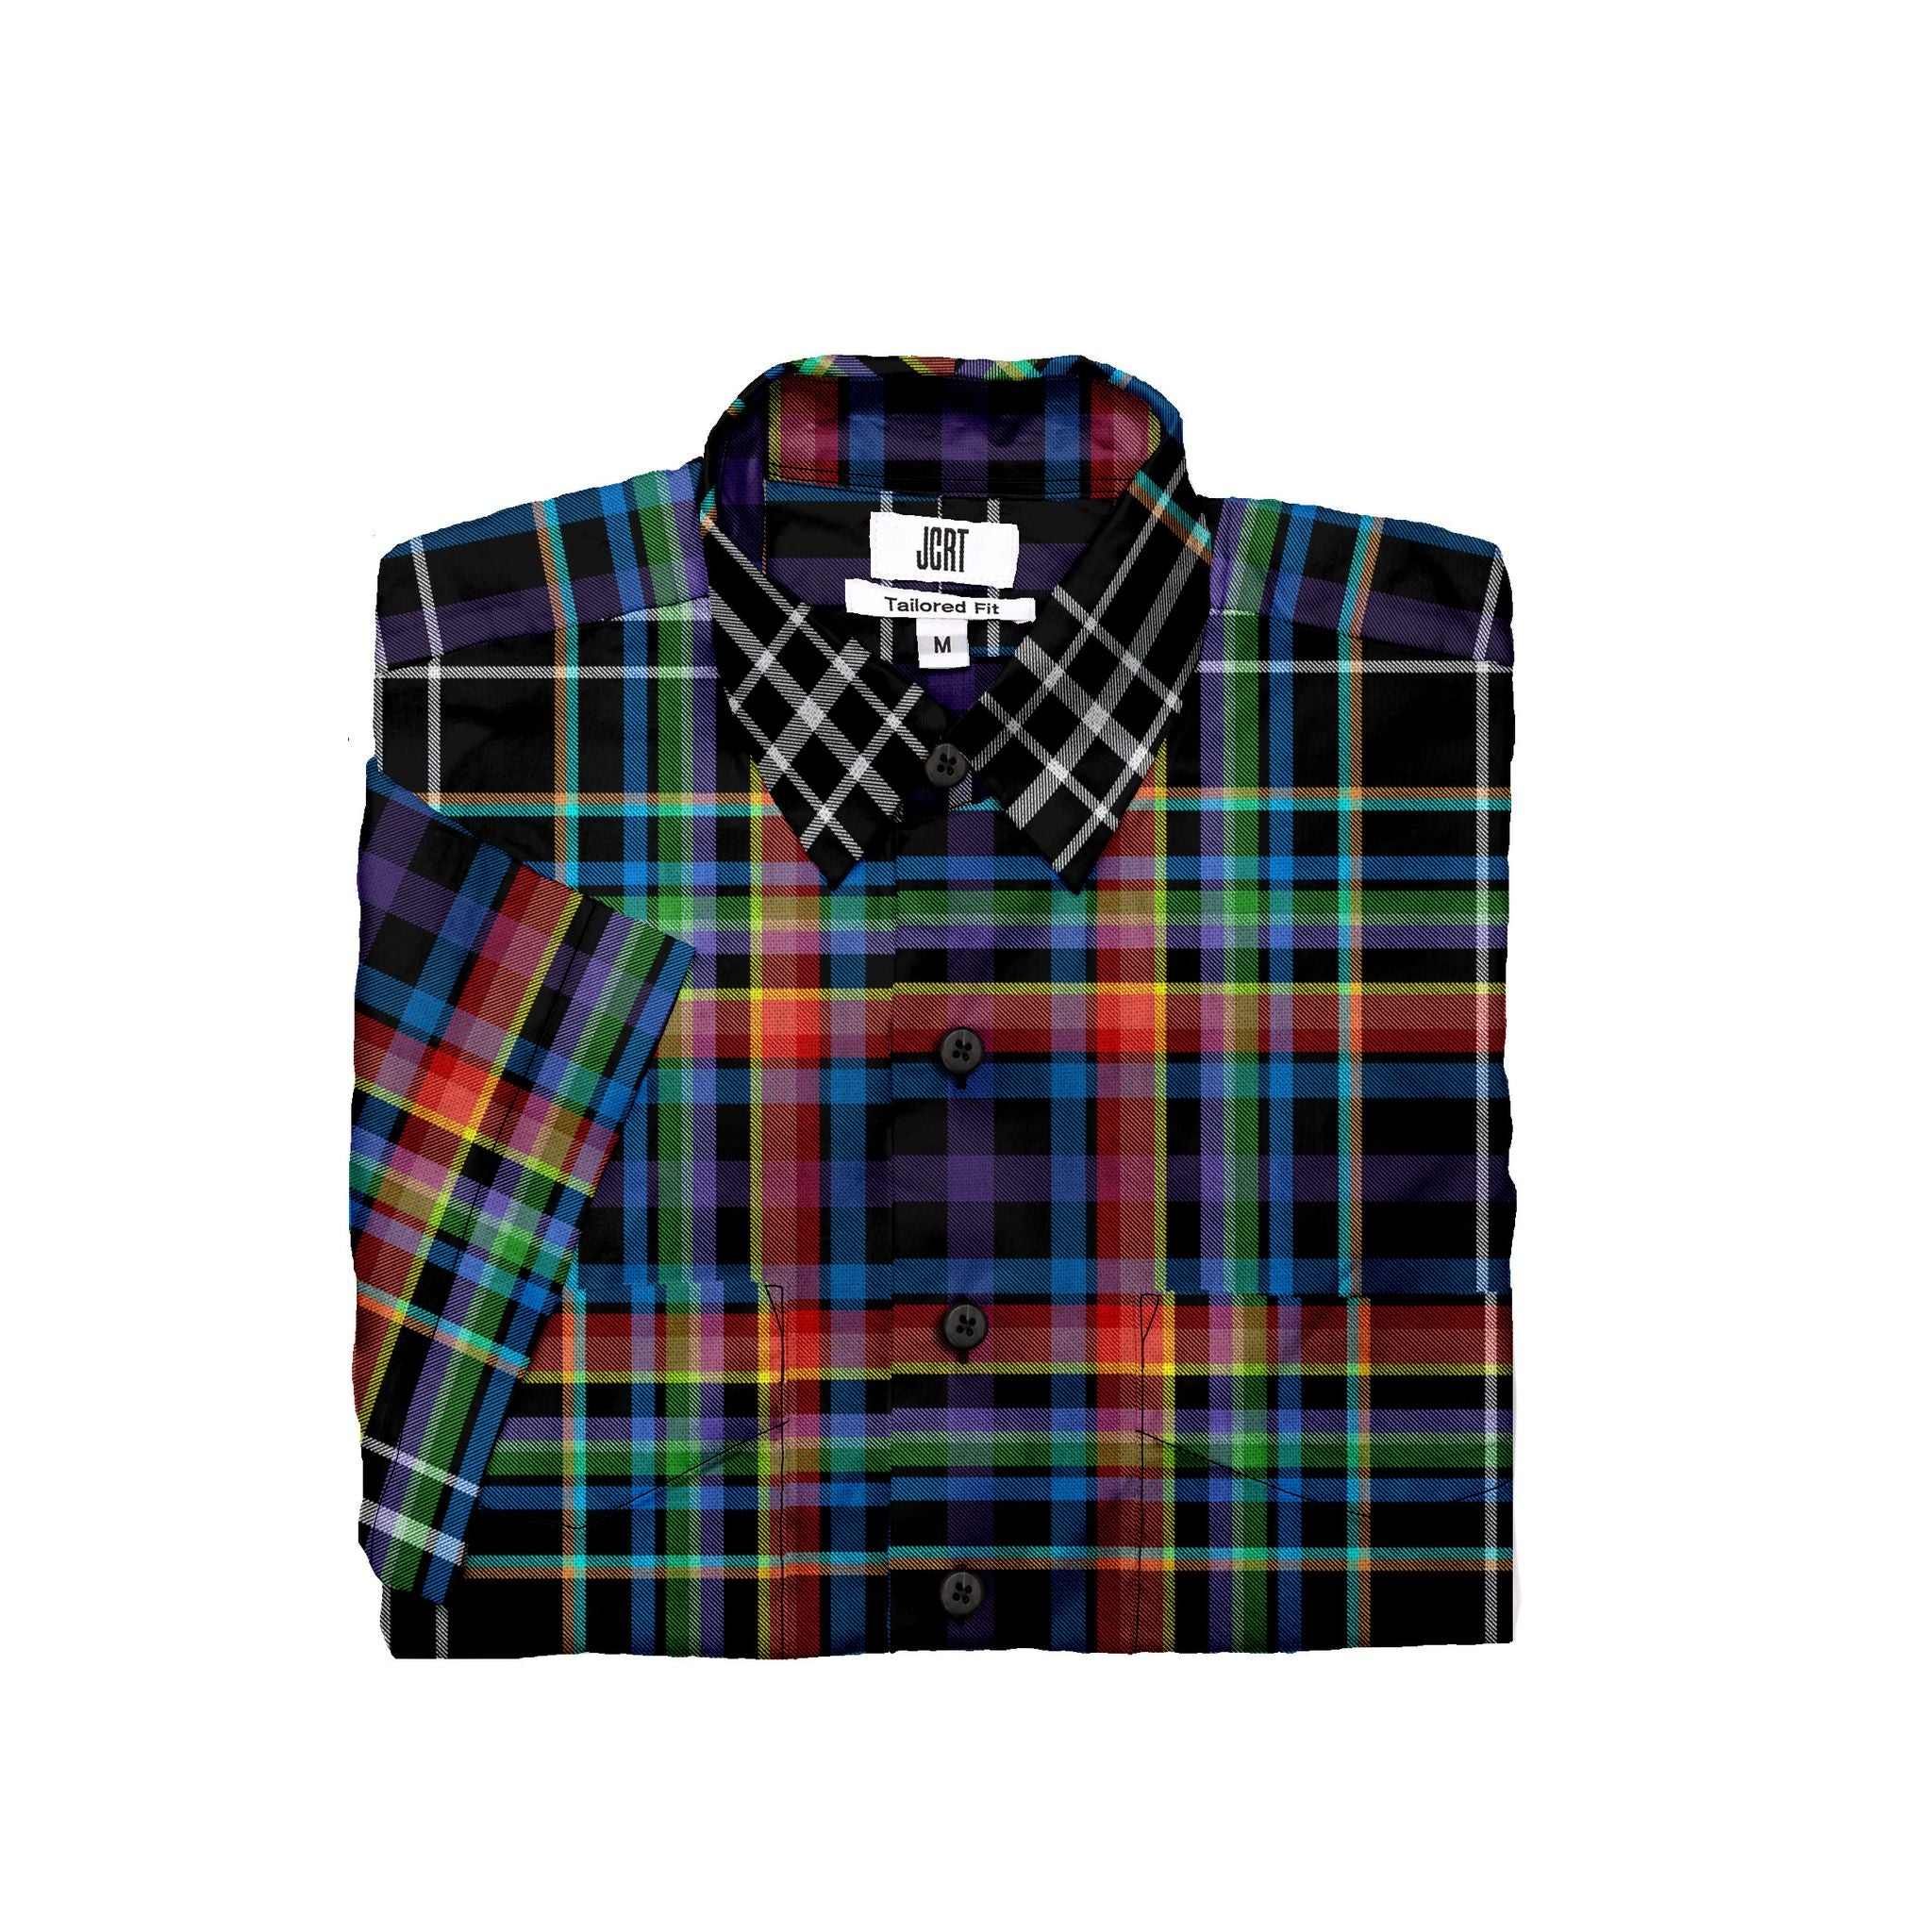 The Extricate Plaid Short Sleeve Shirt